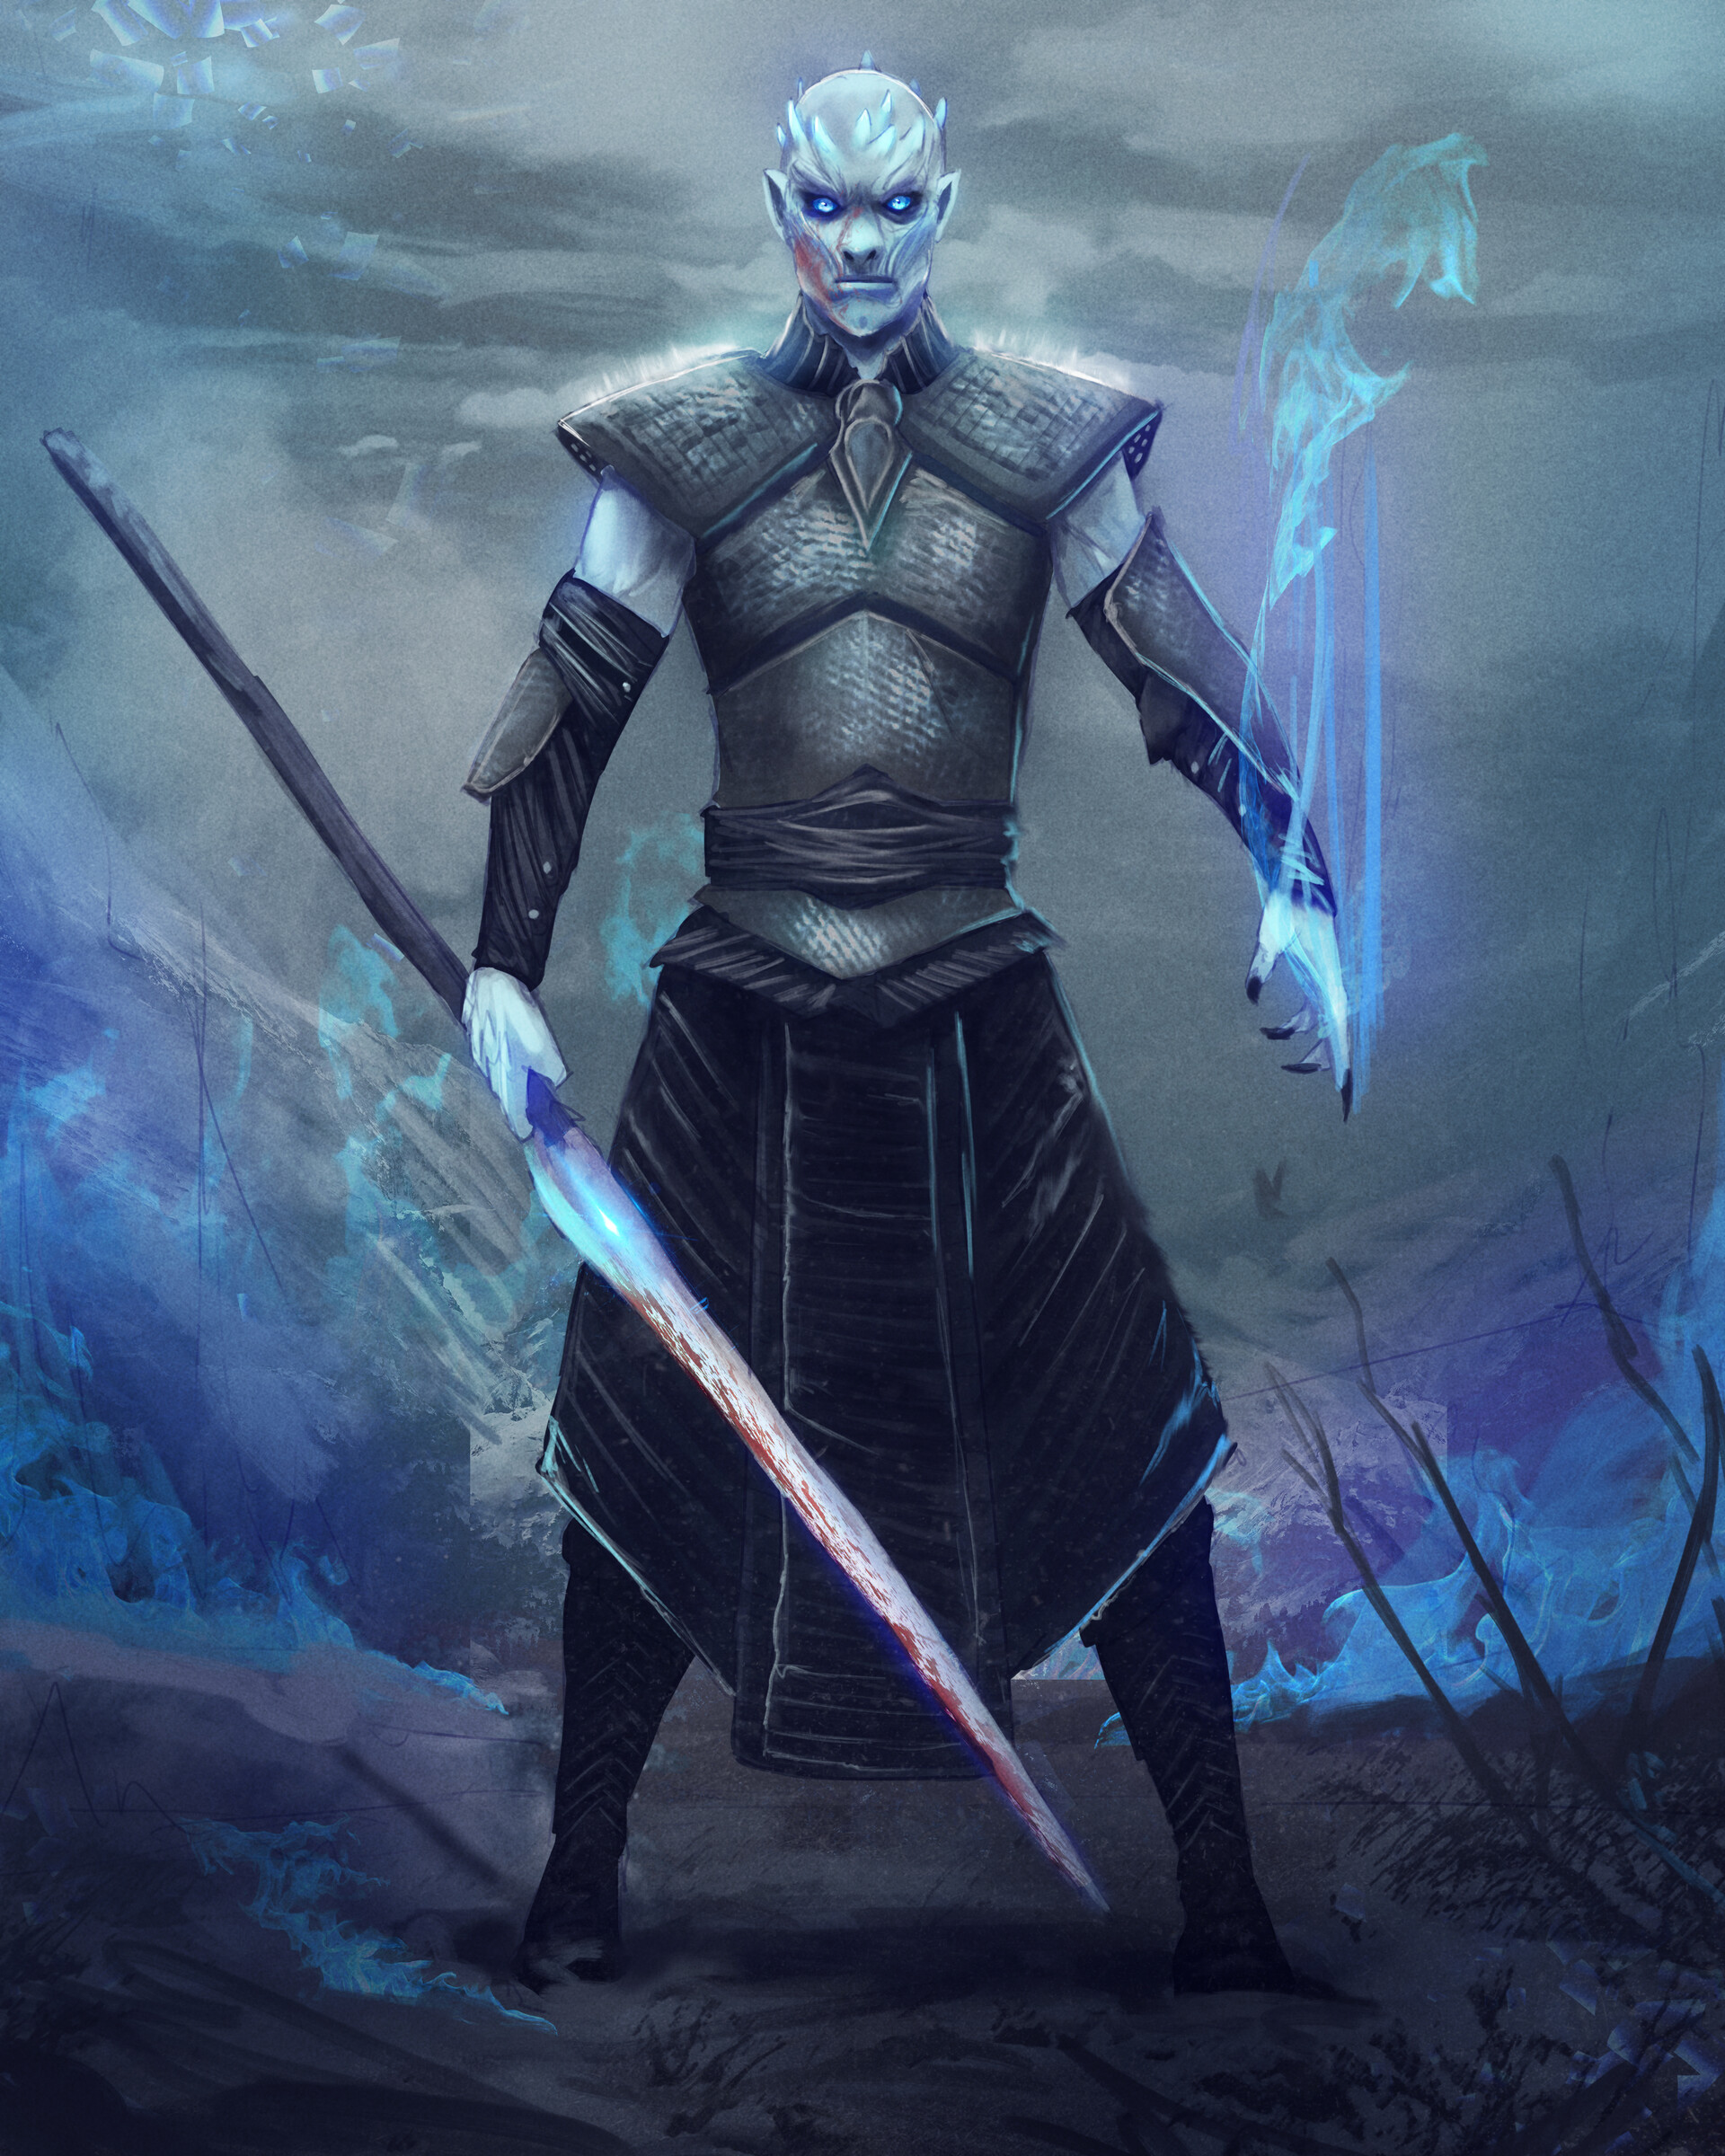 8010f501f0 ArtStation - Winter is Here - The Night King, Christian Botero